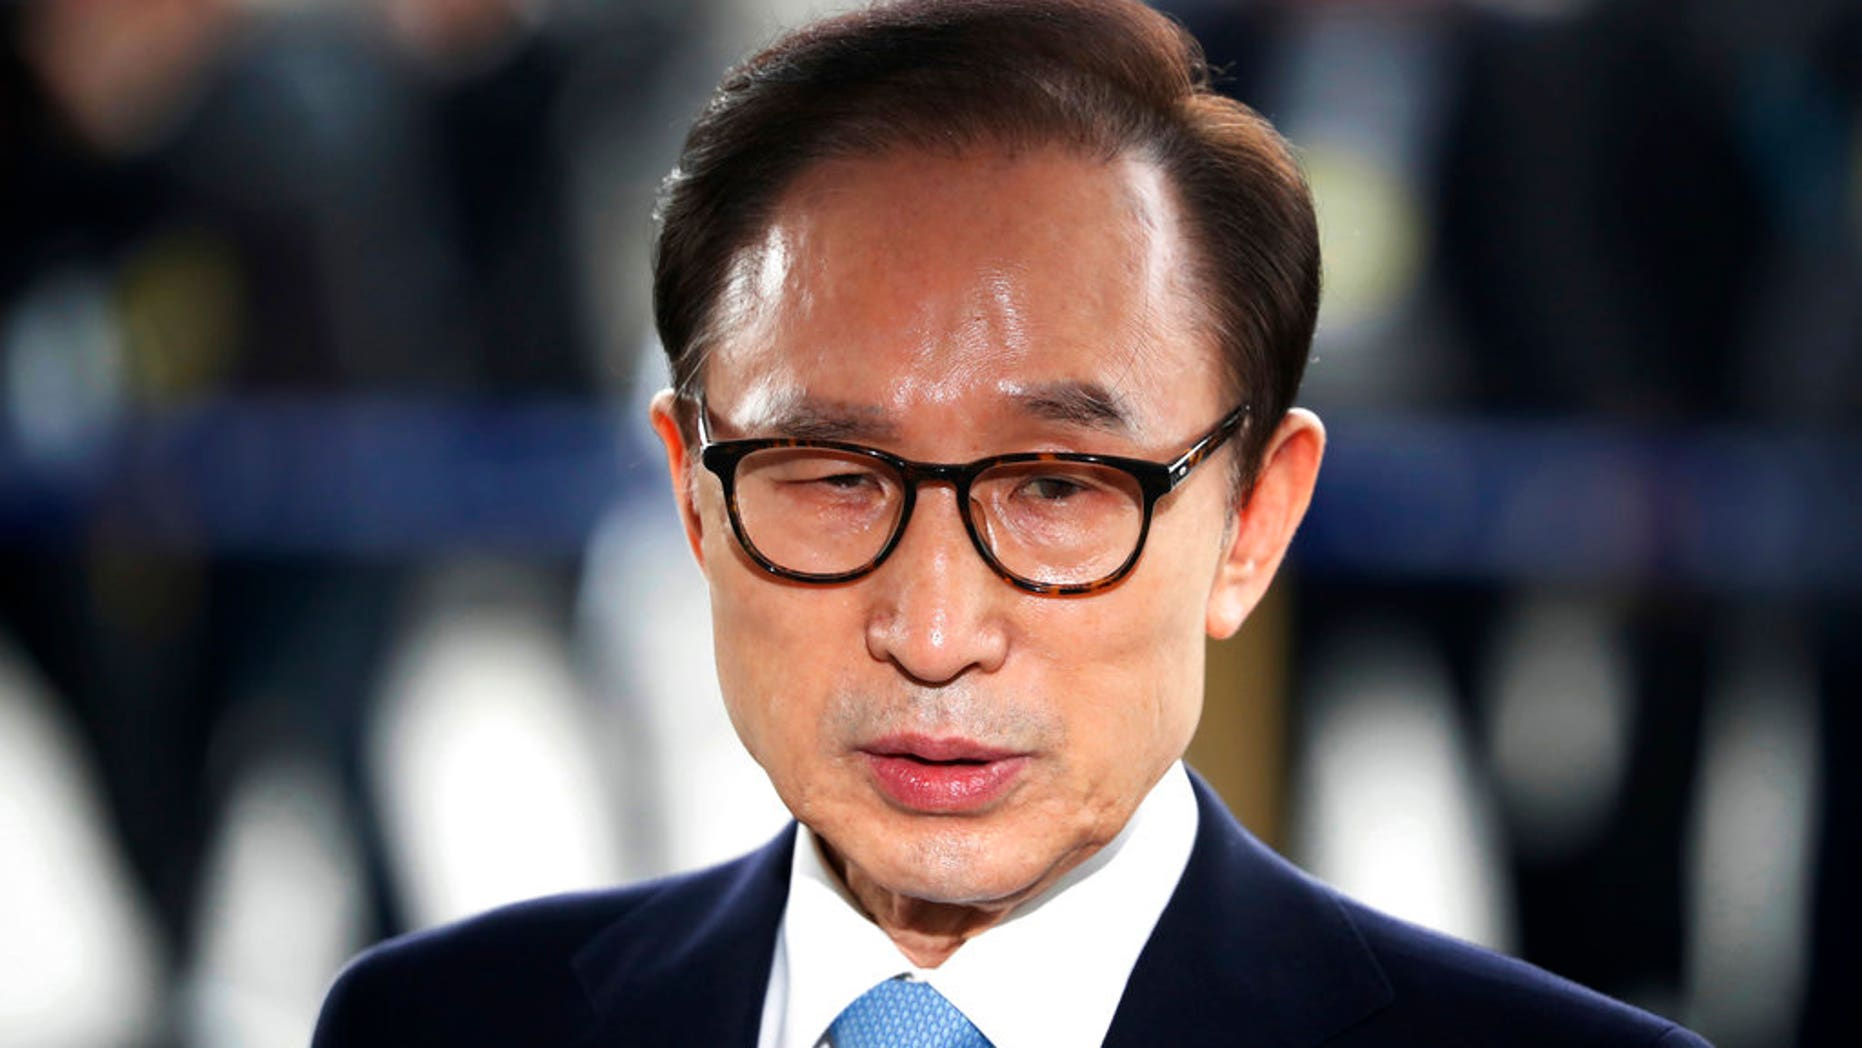 Korea ex-president Lee jailed for 15 years on corruption charges